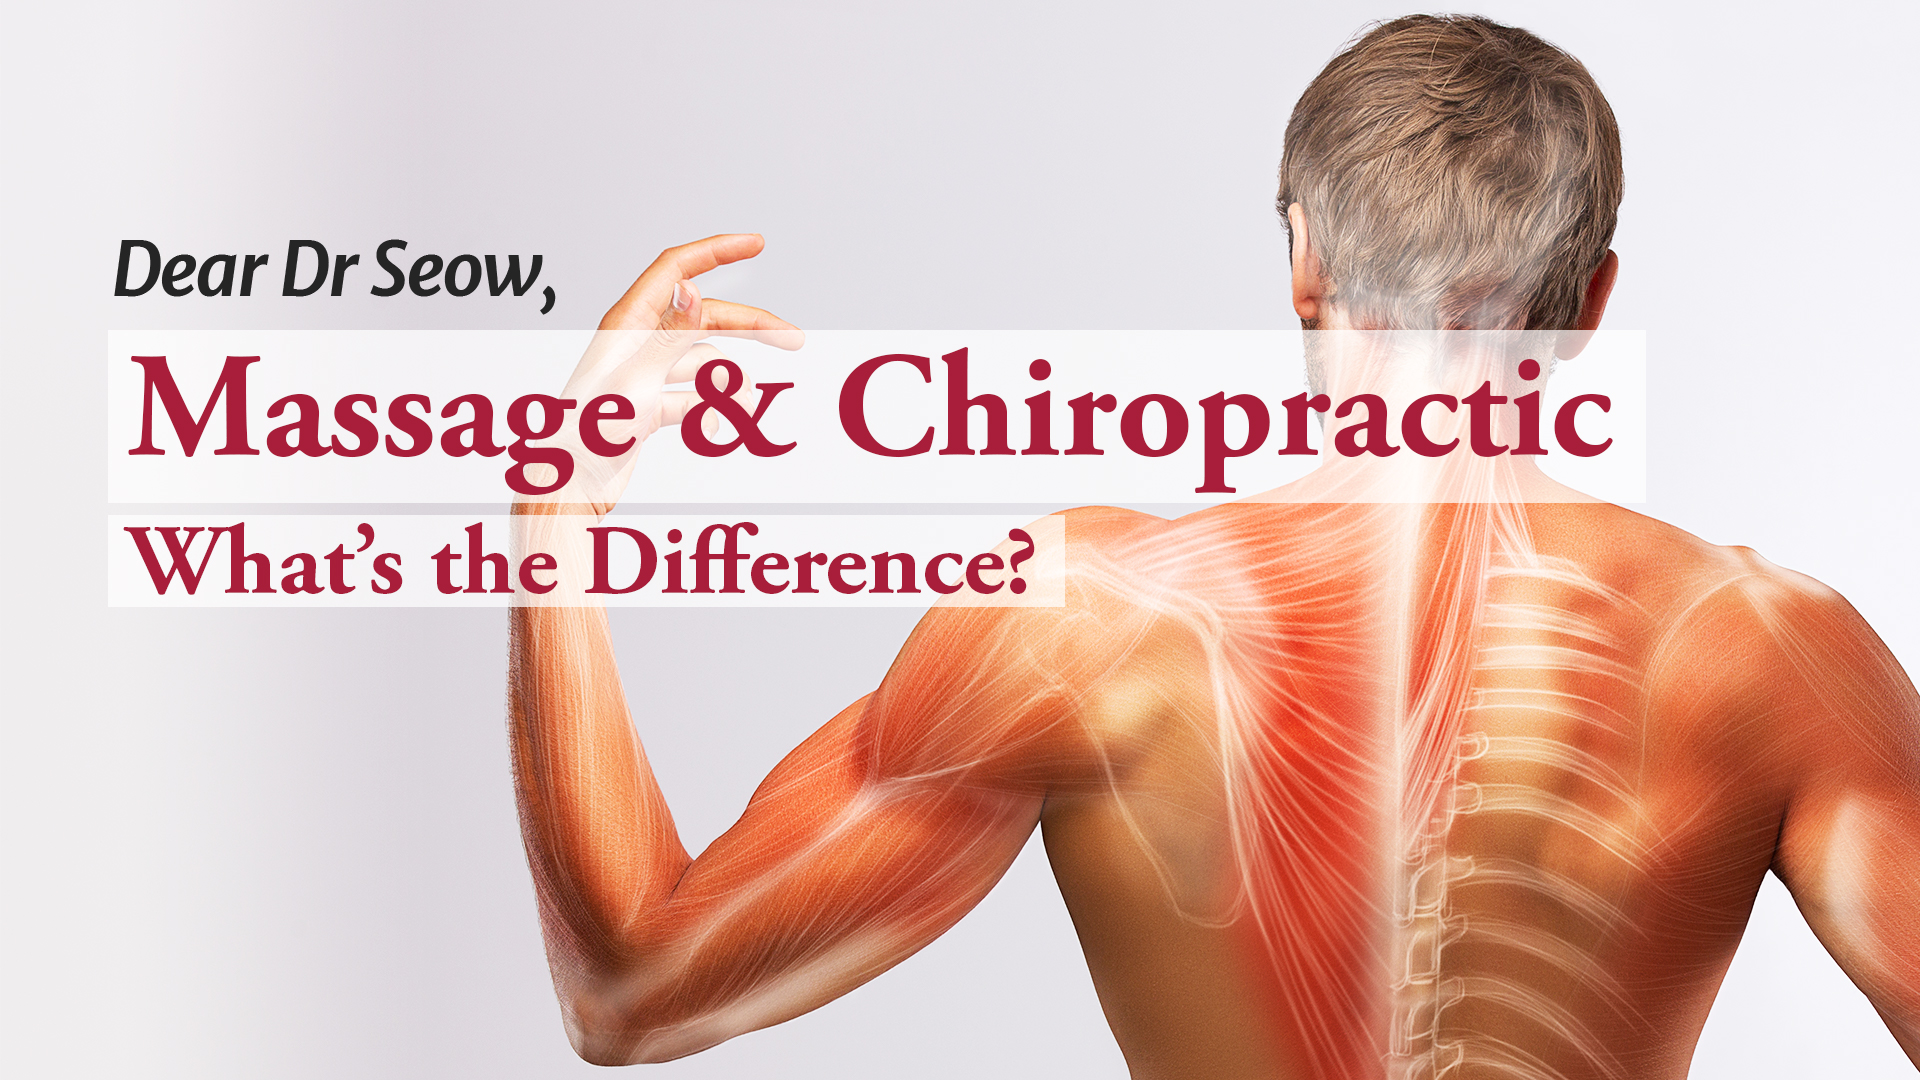 Massage And Chiropractic, What's The Difference?